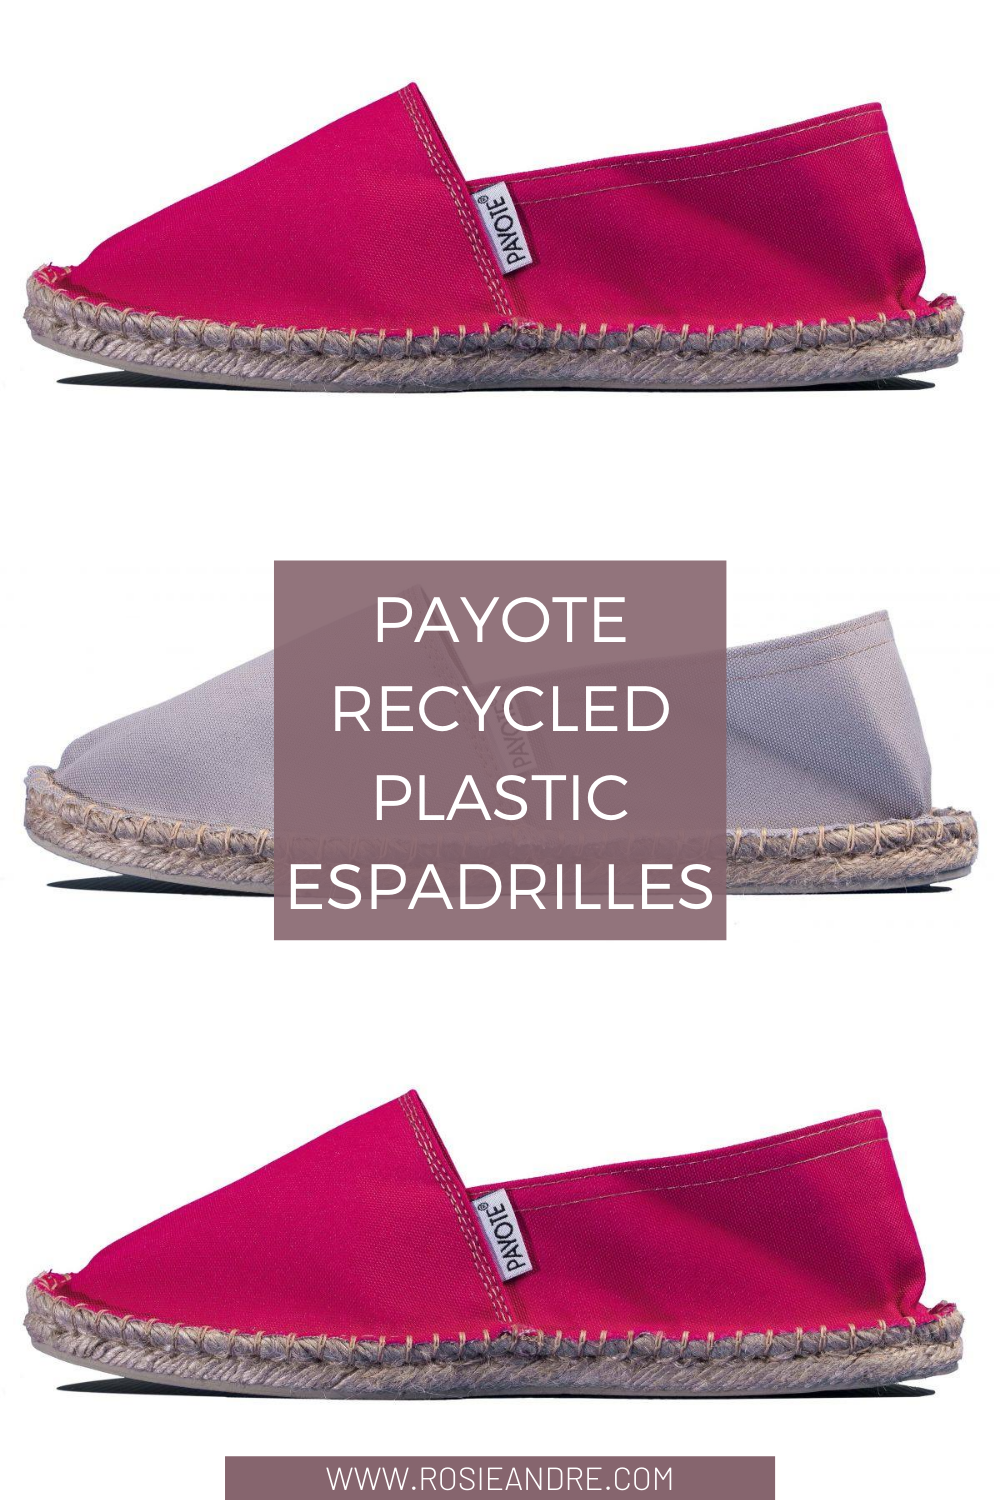 Rosie Andre - Payote (espadrilles, french fashion, made in france, espadrilles, recycled plastic, ocean plastic, eco friendly, fair trade, sustainable, eco friendly fashion, eco friendly shoes)